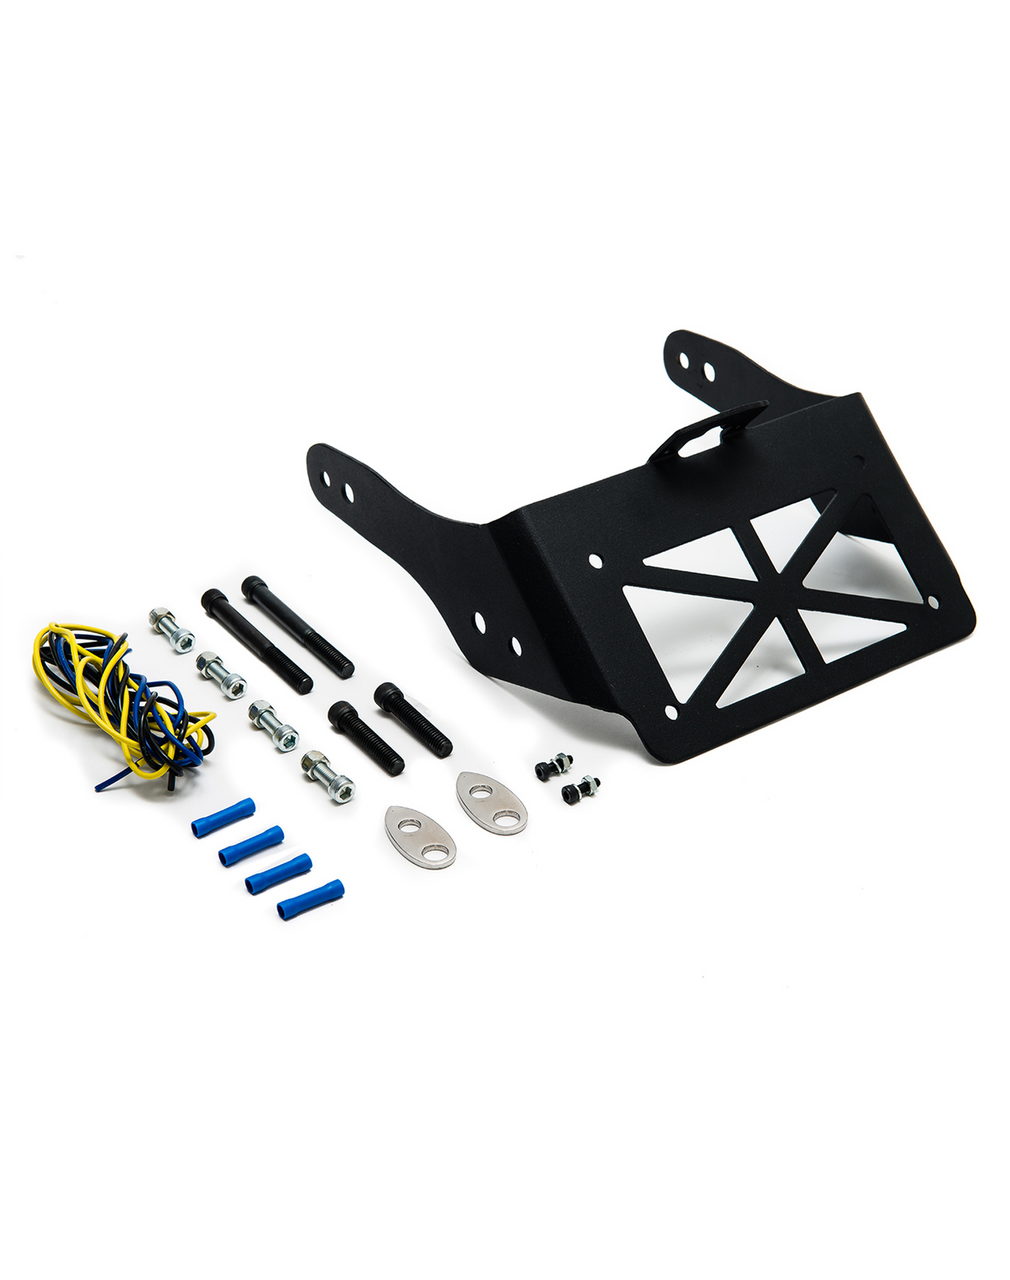 Dyna Licence Plate and Turn Signal Relocation Kit with Nets and Bolts